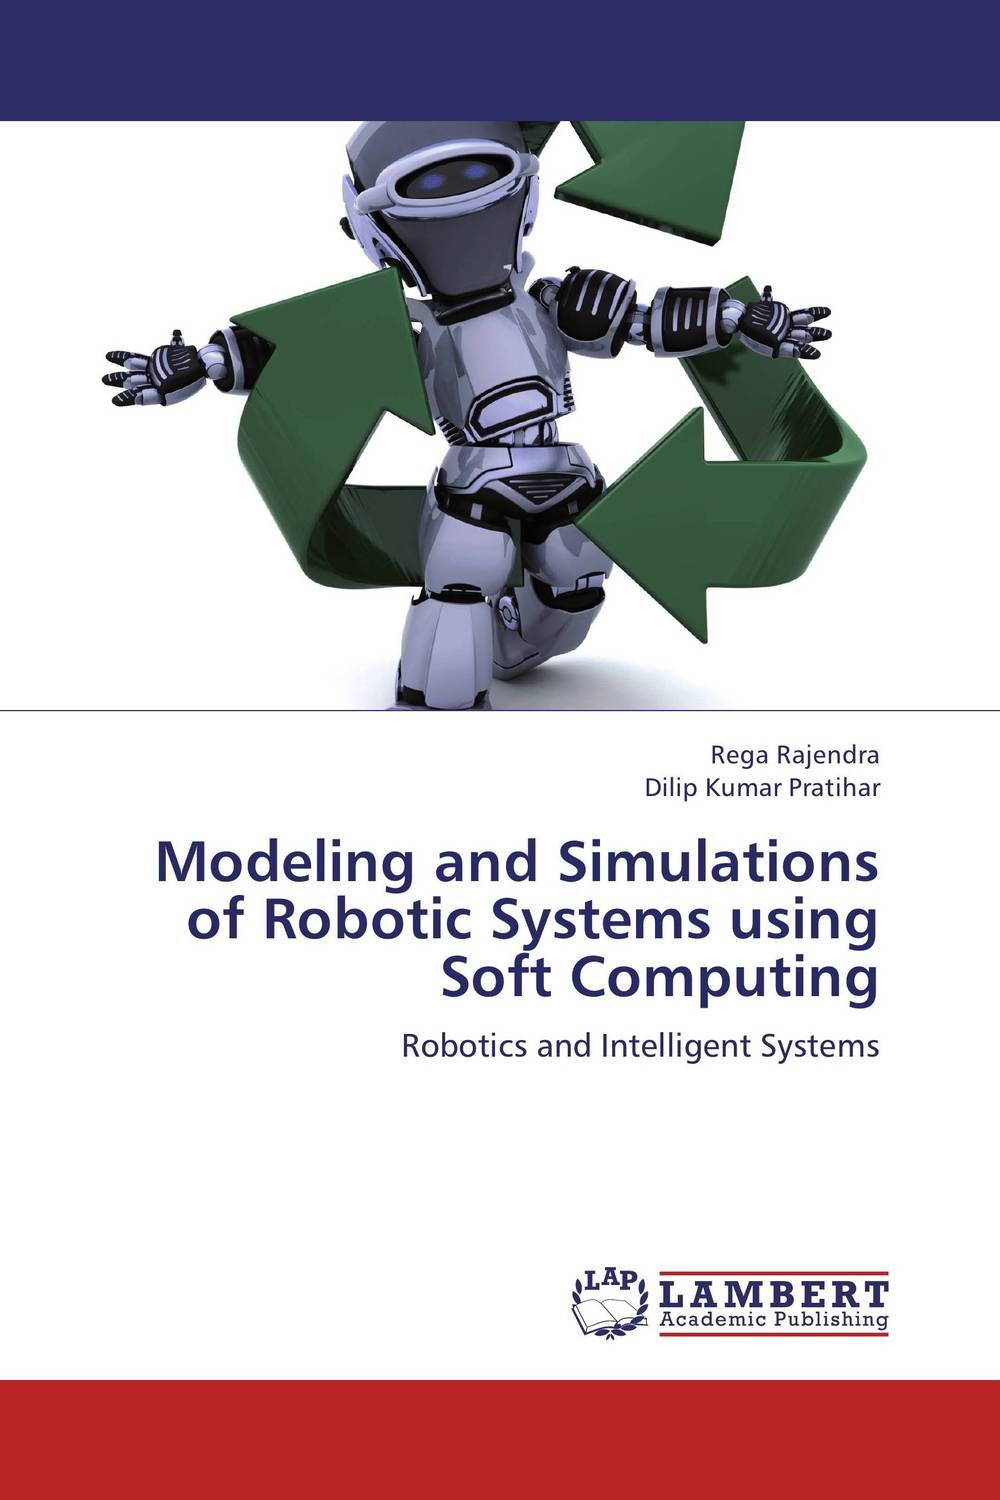 Modeling and Simulations of Robotic Systems using Soft Computing